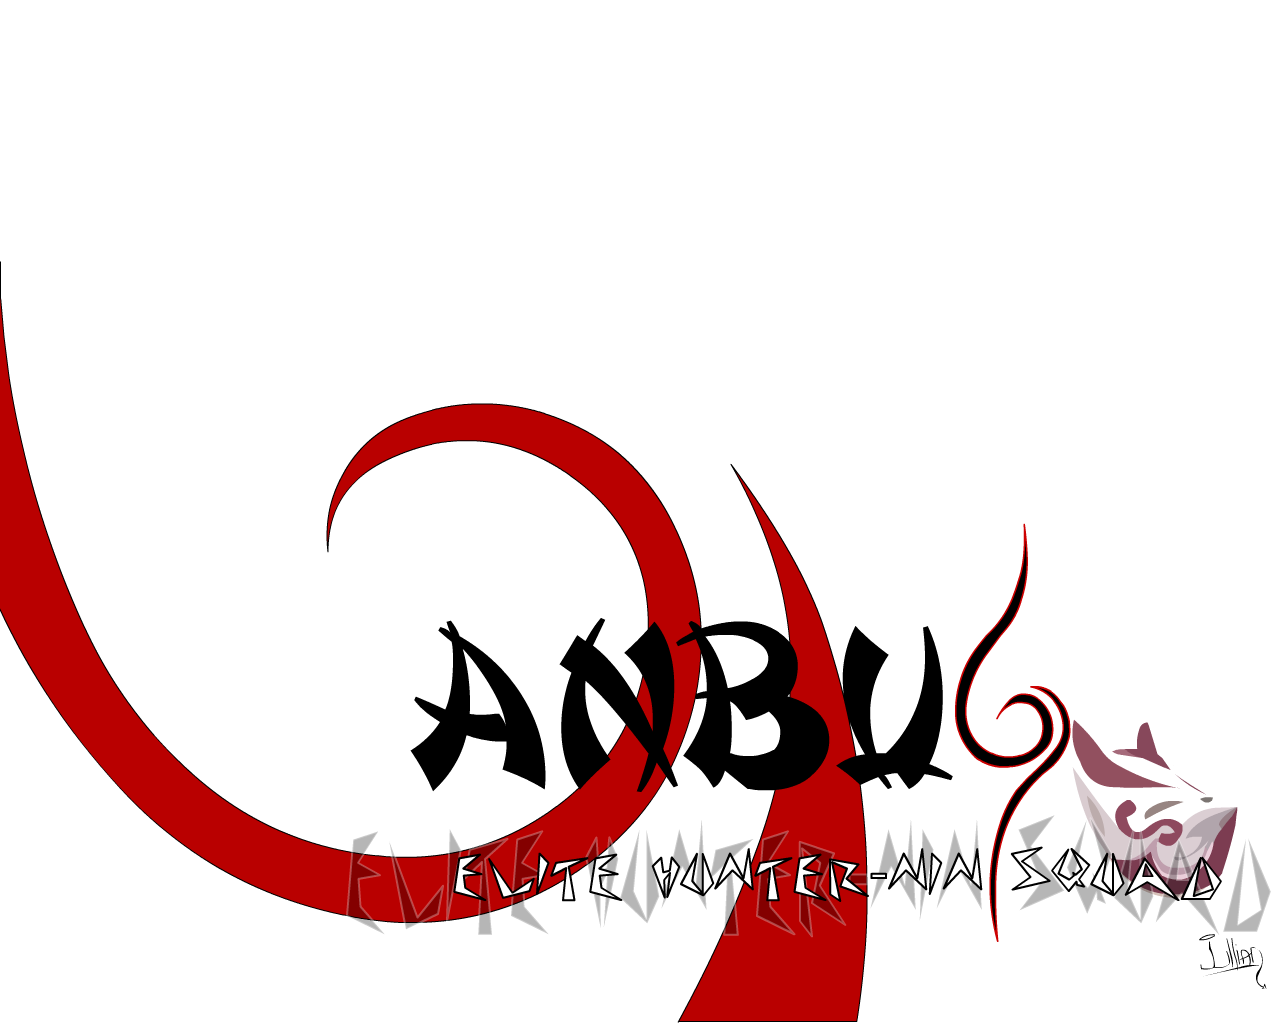 ANBU wallpaper by Byakugan-Boi on DeviantArt